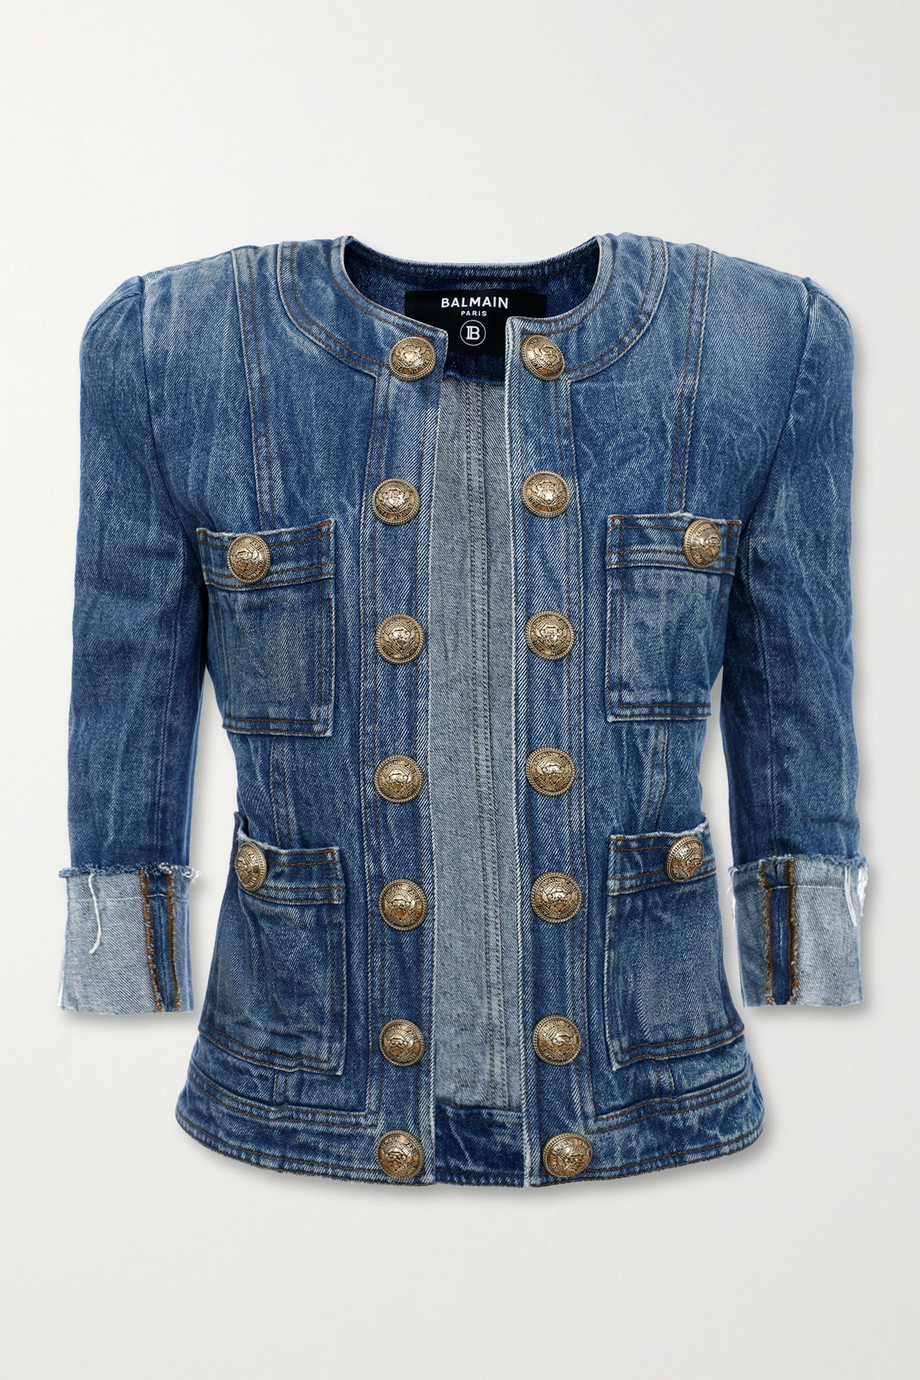 Balmain Button-embellished denim jacket